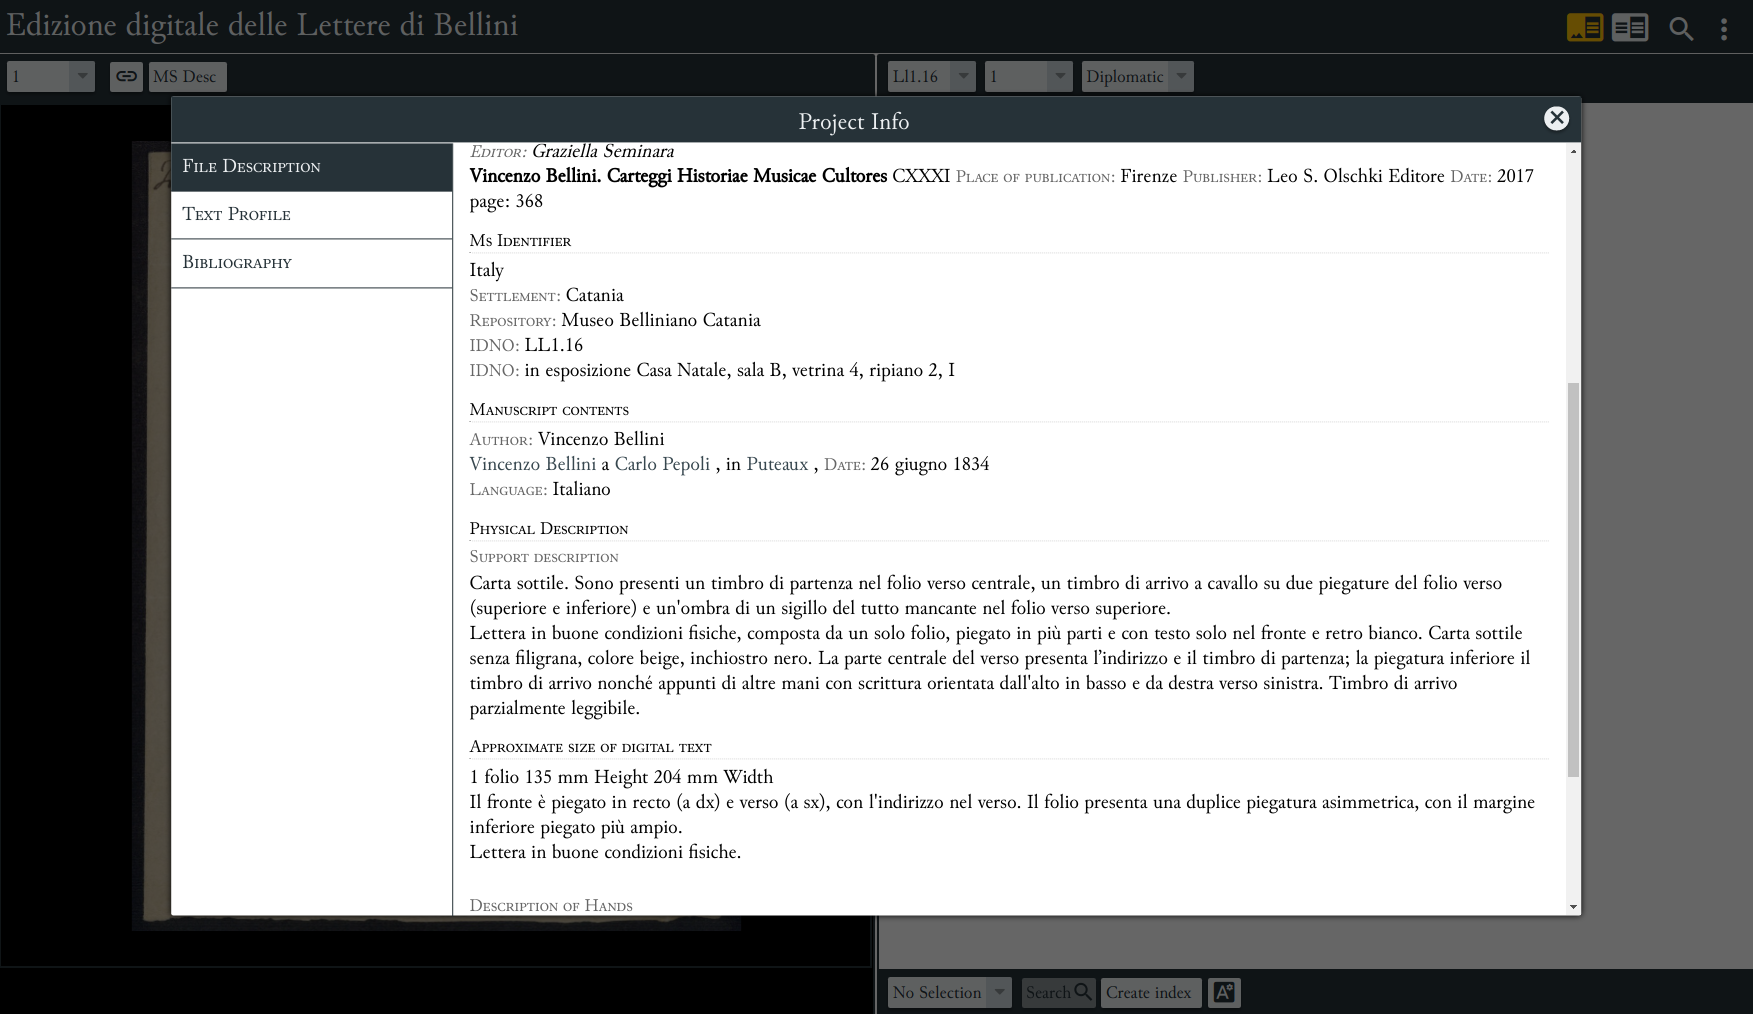 Current prototype concerning the Bellini's Correspondence Digital Edition: EVT.